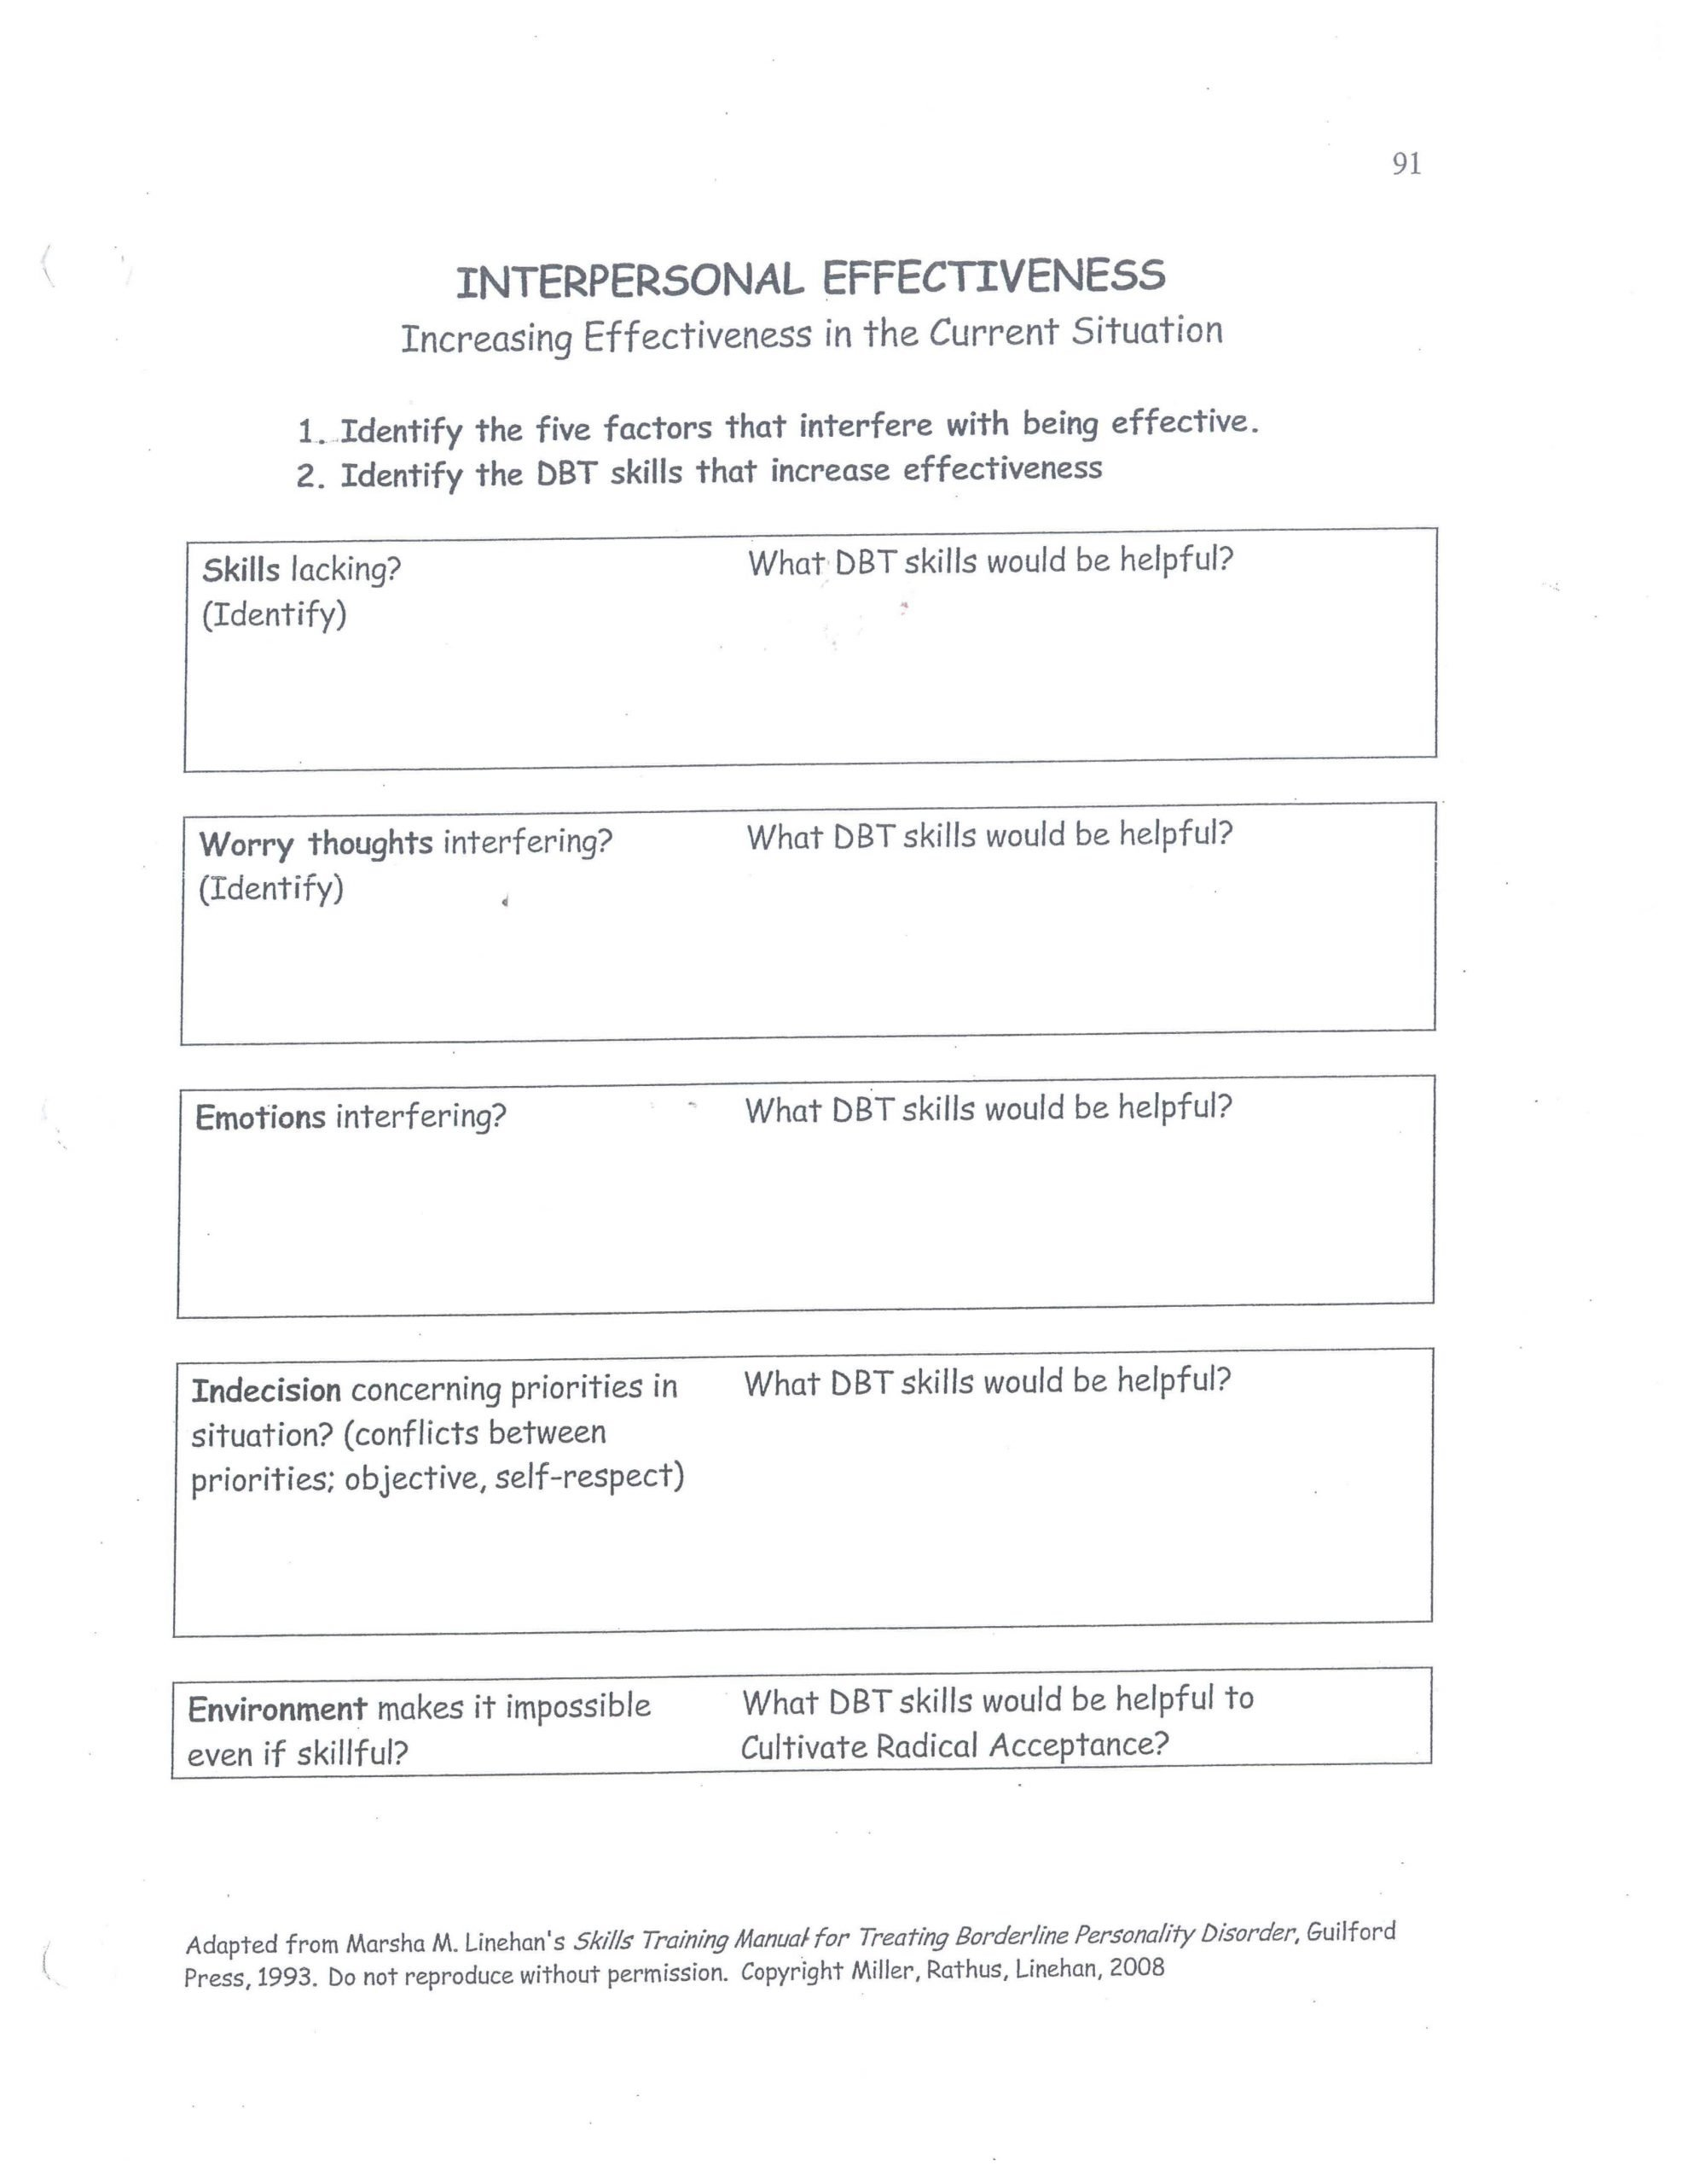 Interpersonal Communication Worksheets Dbt Interpersonal Effectiveness Increasing Effectiveness